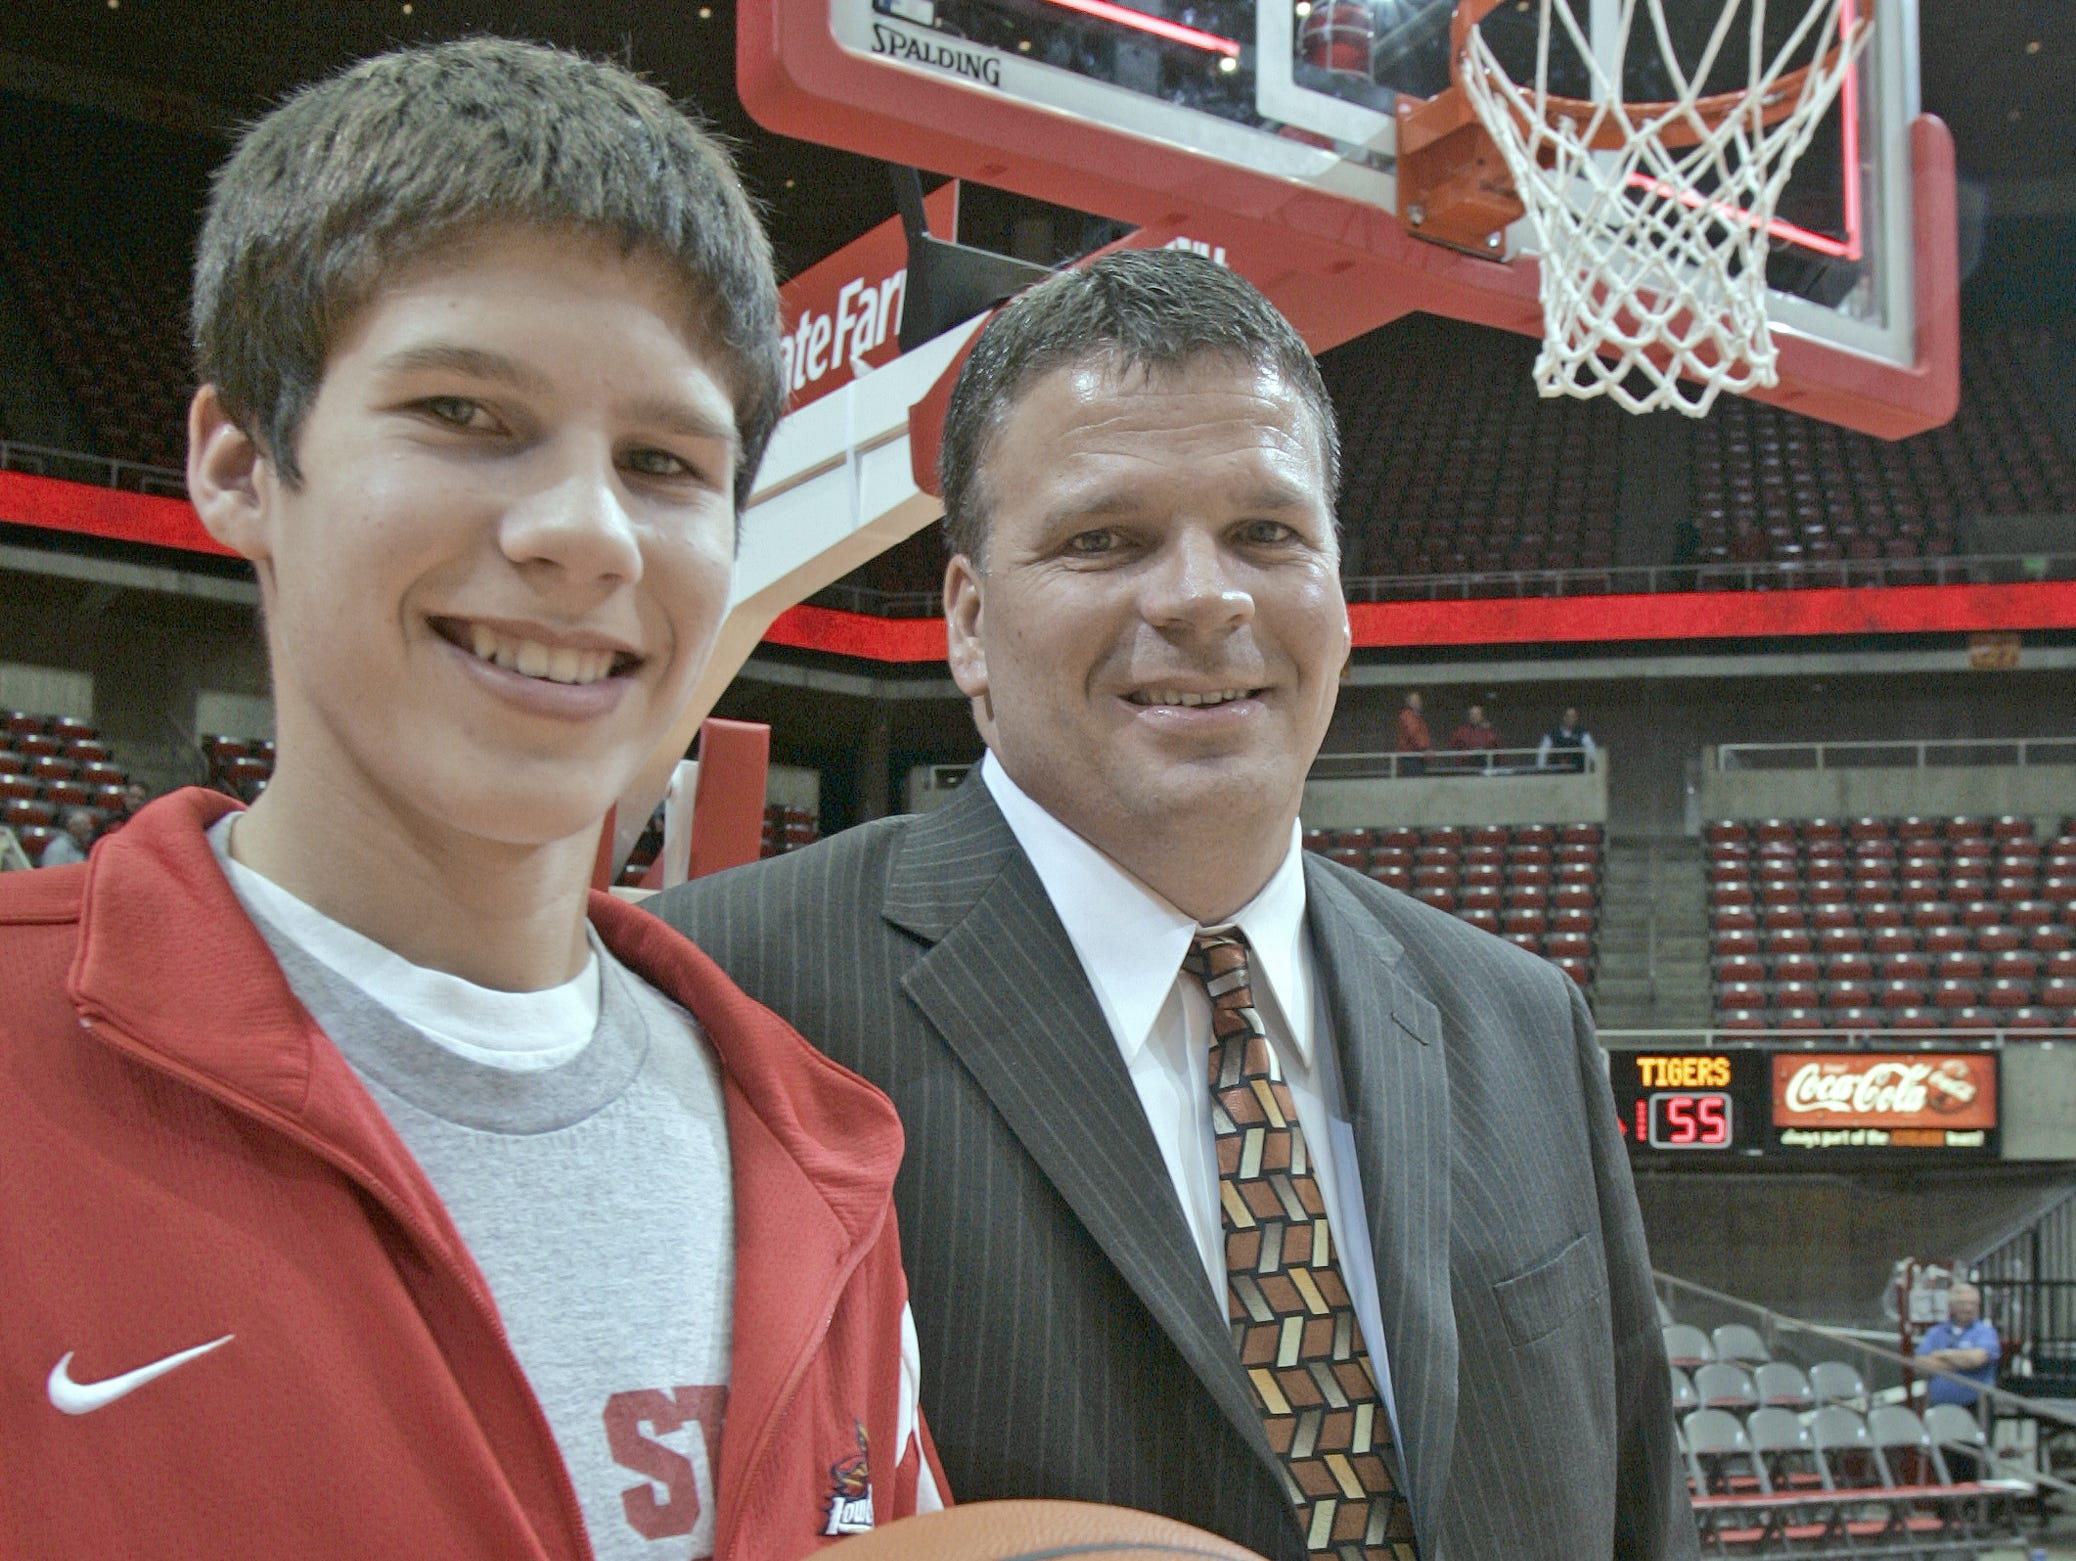 Doug McDermott,15, left, with his father, former Iowa State head men's basketball coach Greg McDermott, on the basketball court at Hilton Coliseum in Ames following ISU's win over Texas Southern on Dec. 19, 2007.